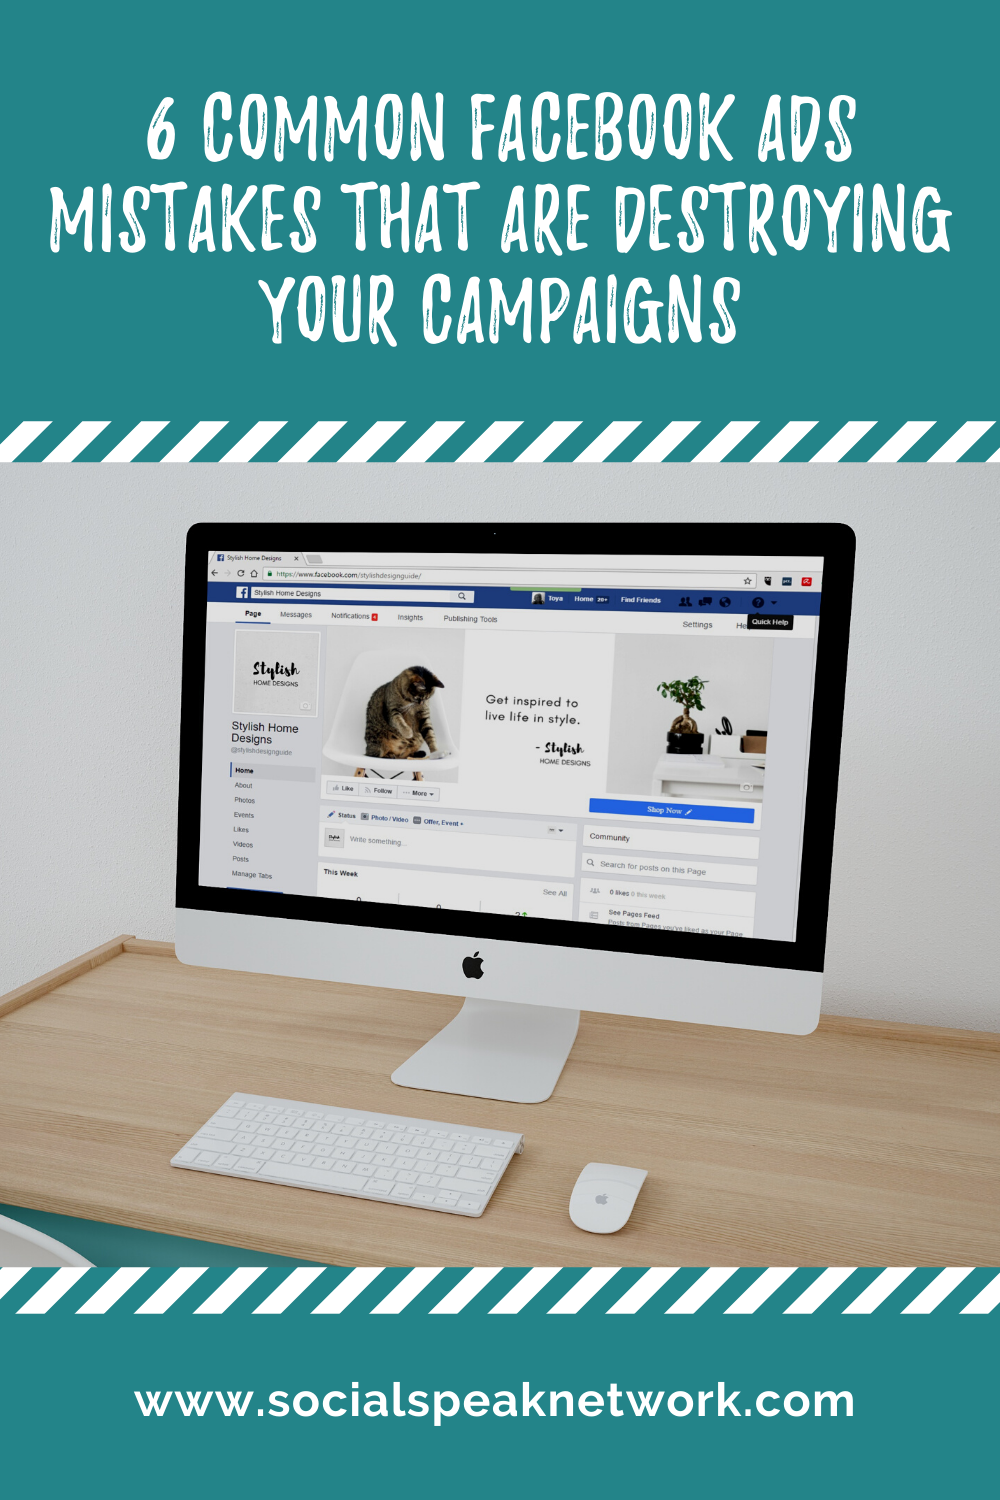 6 Common Facebook Ads Mistakes That Are Destroying Your Campaigns